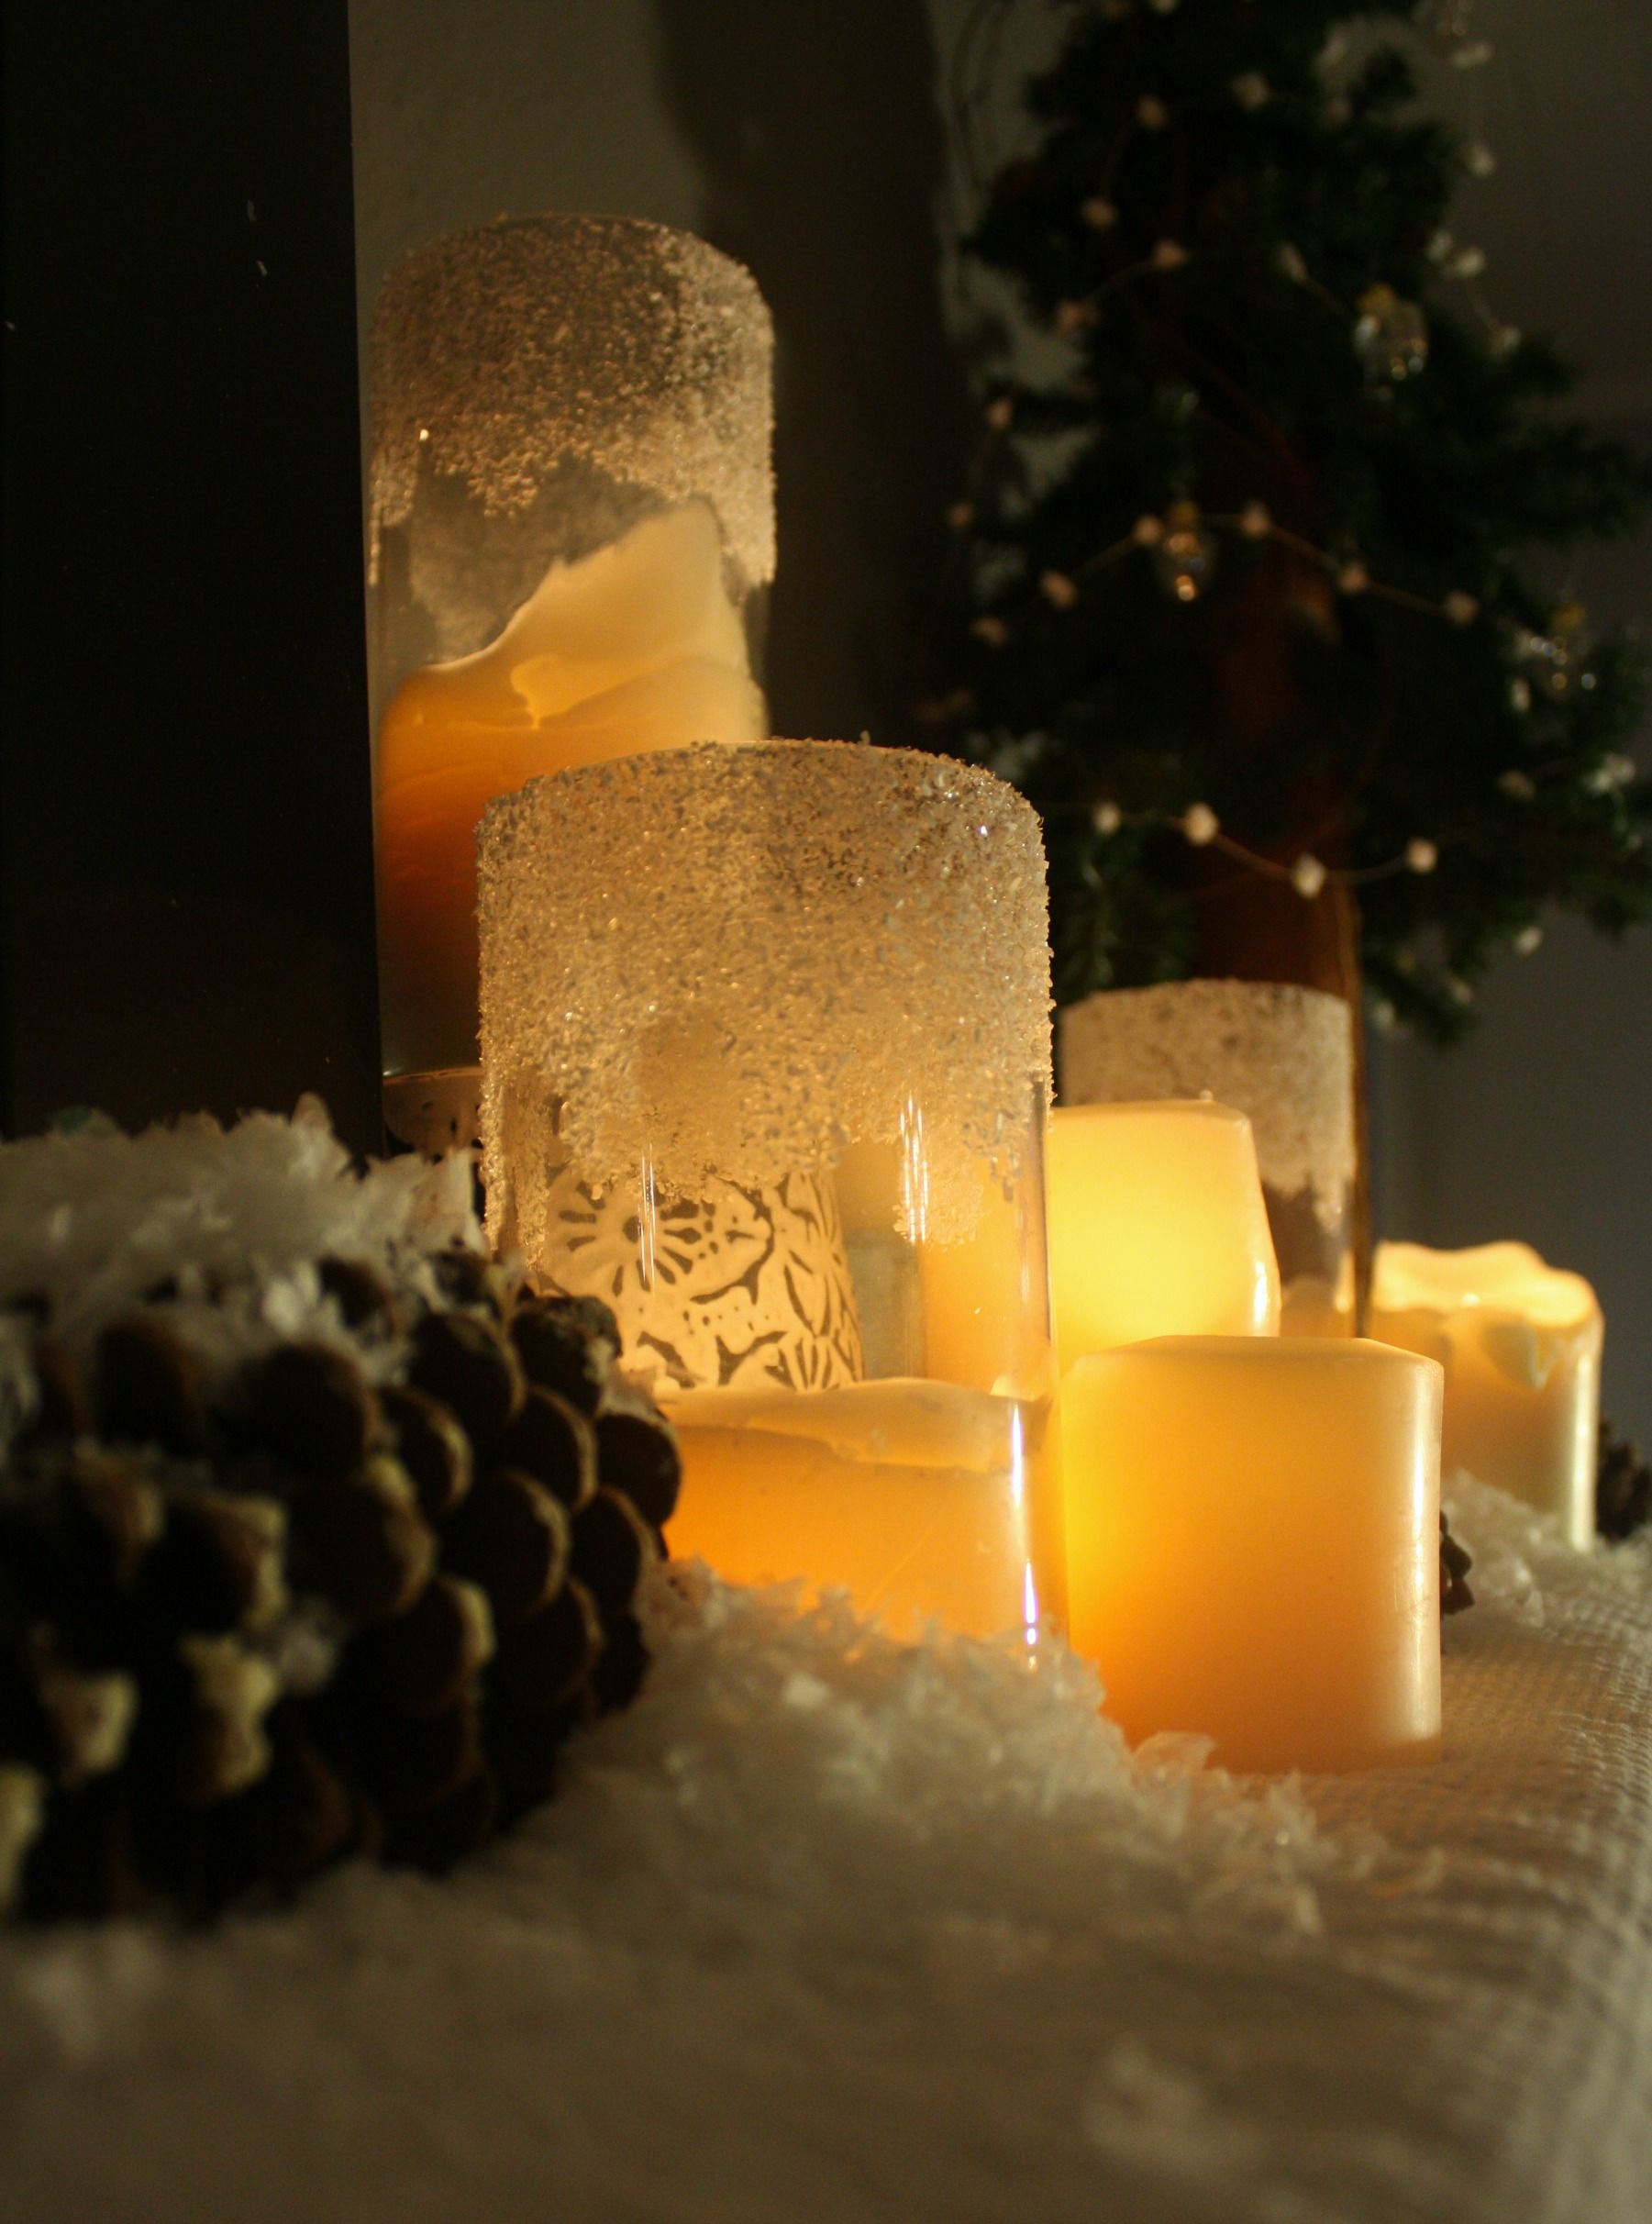 Christmas Mantel Snowy Woodlands Candle inspiration